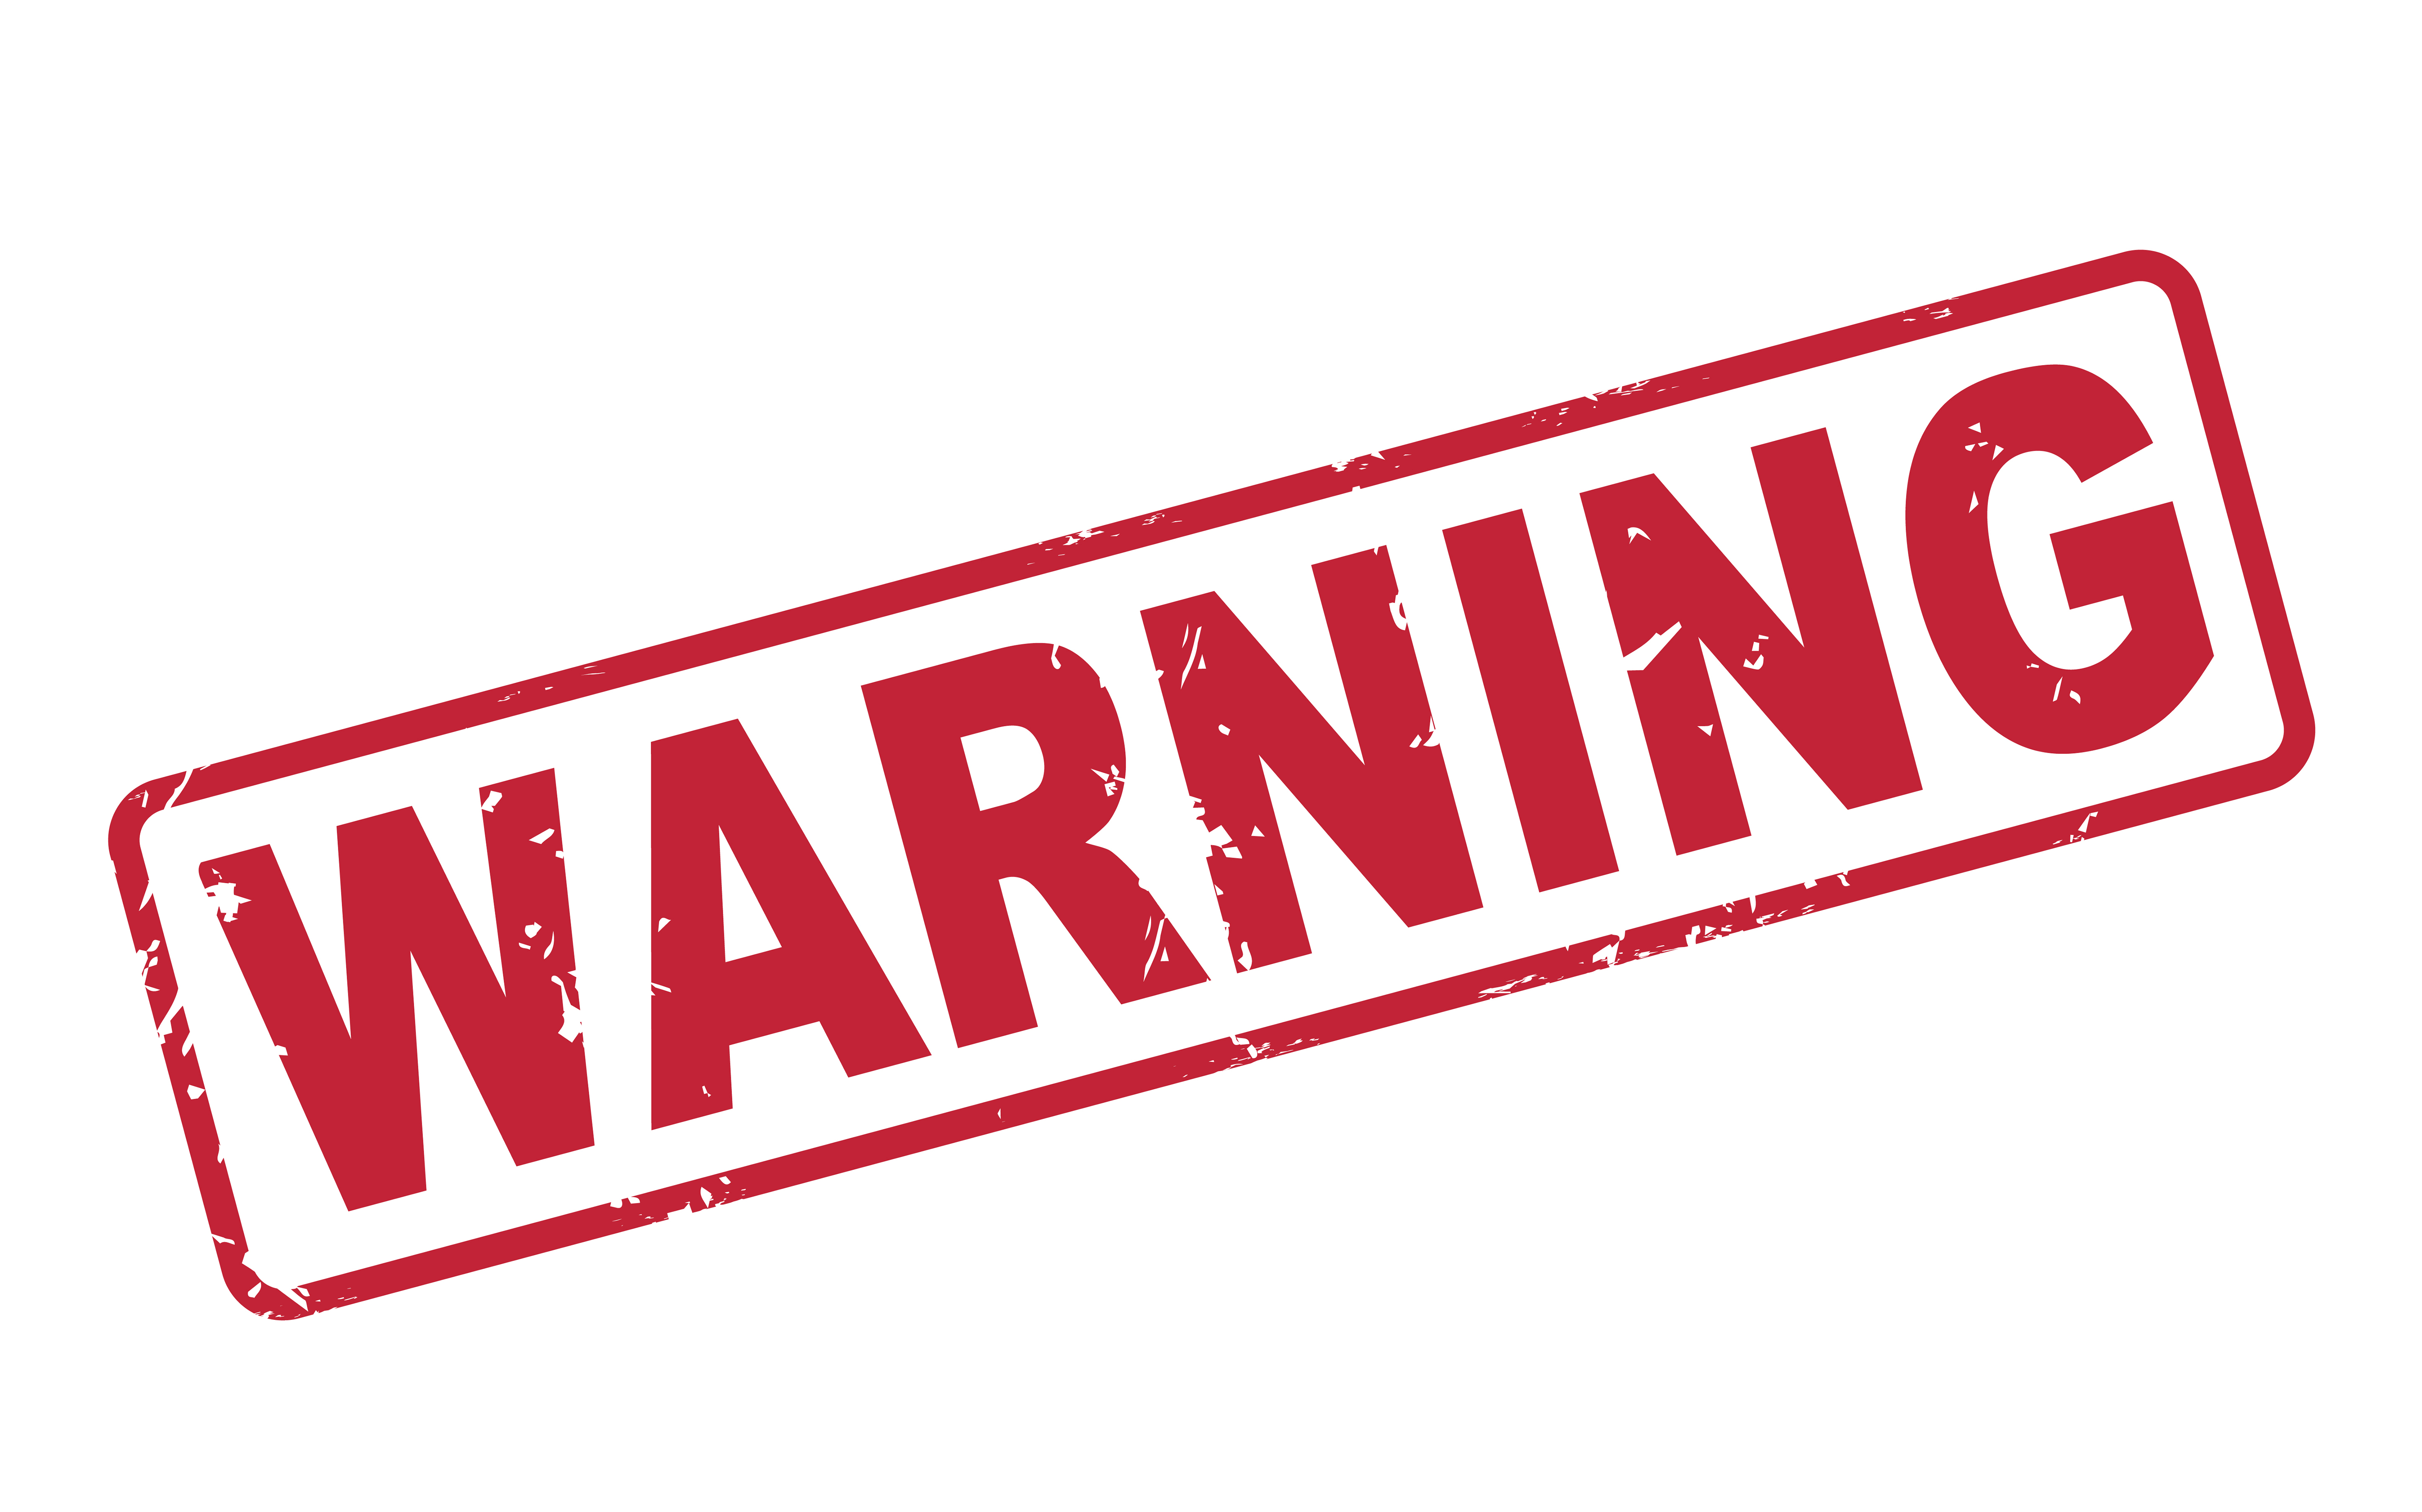 Warning clipart #1, Download drawings